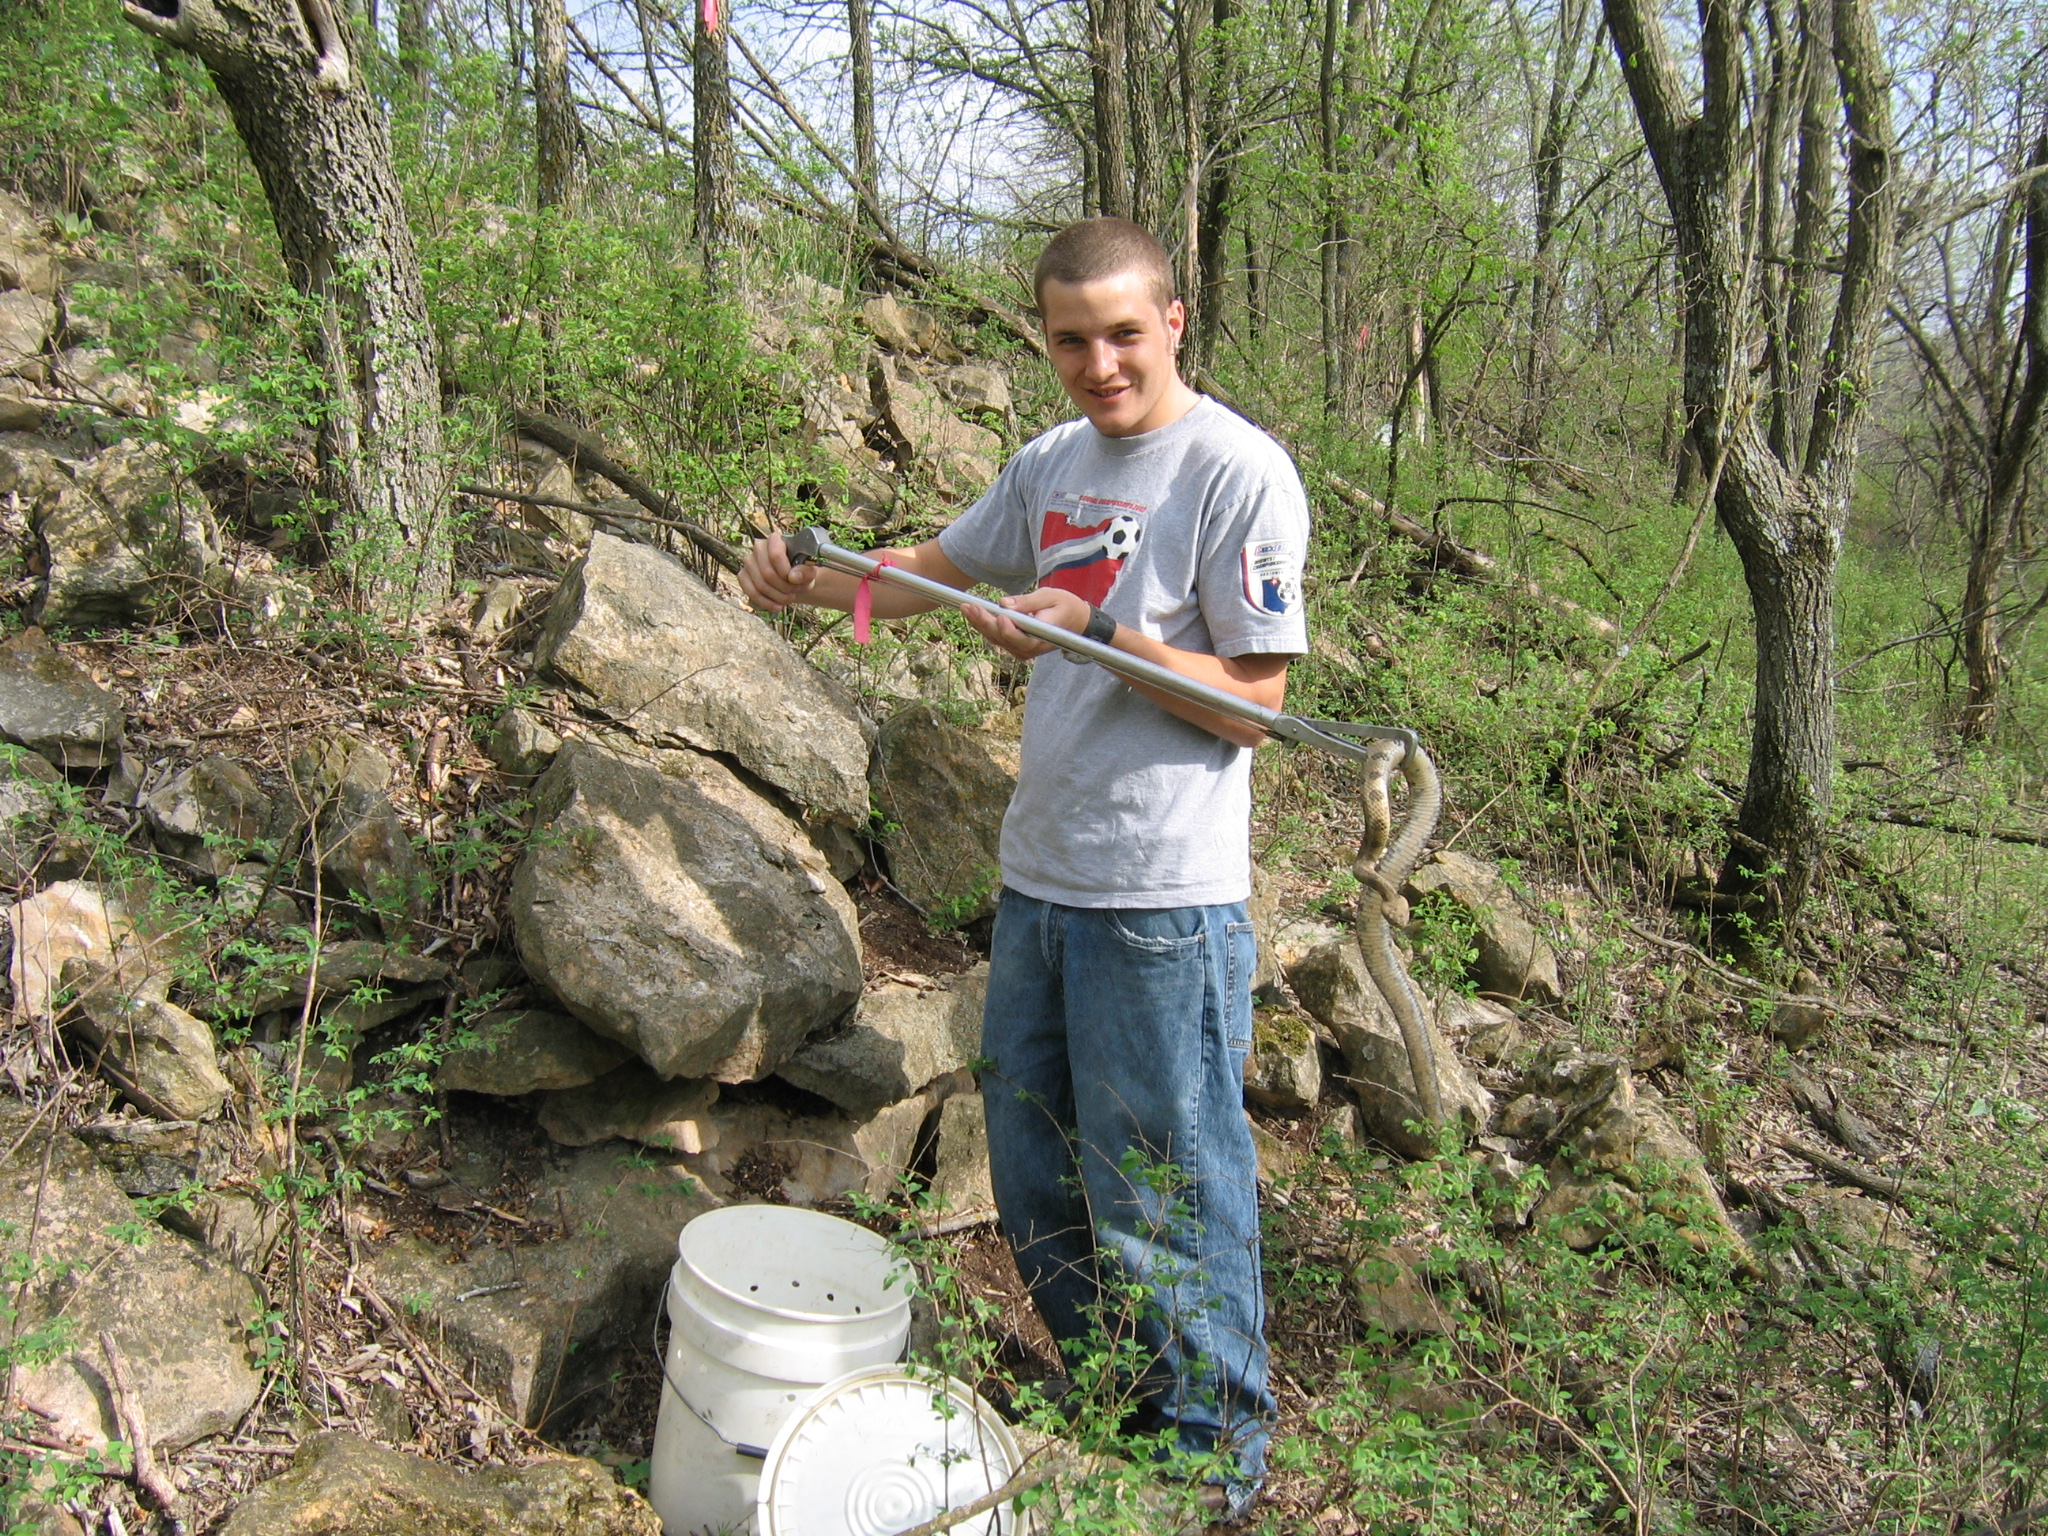 Tracking Timber Rattlesnakes back at KU (2006)